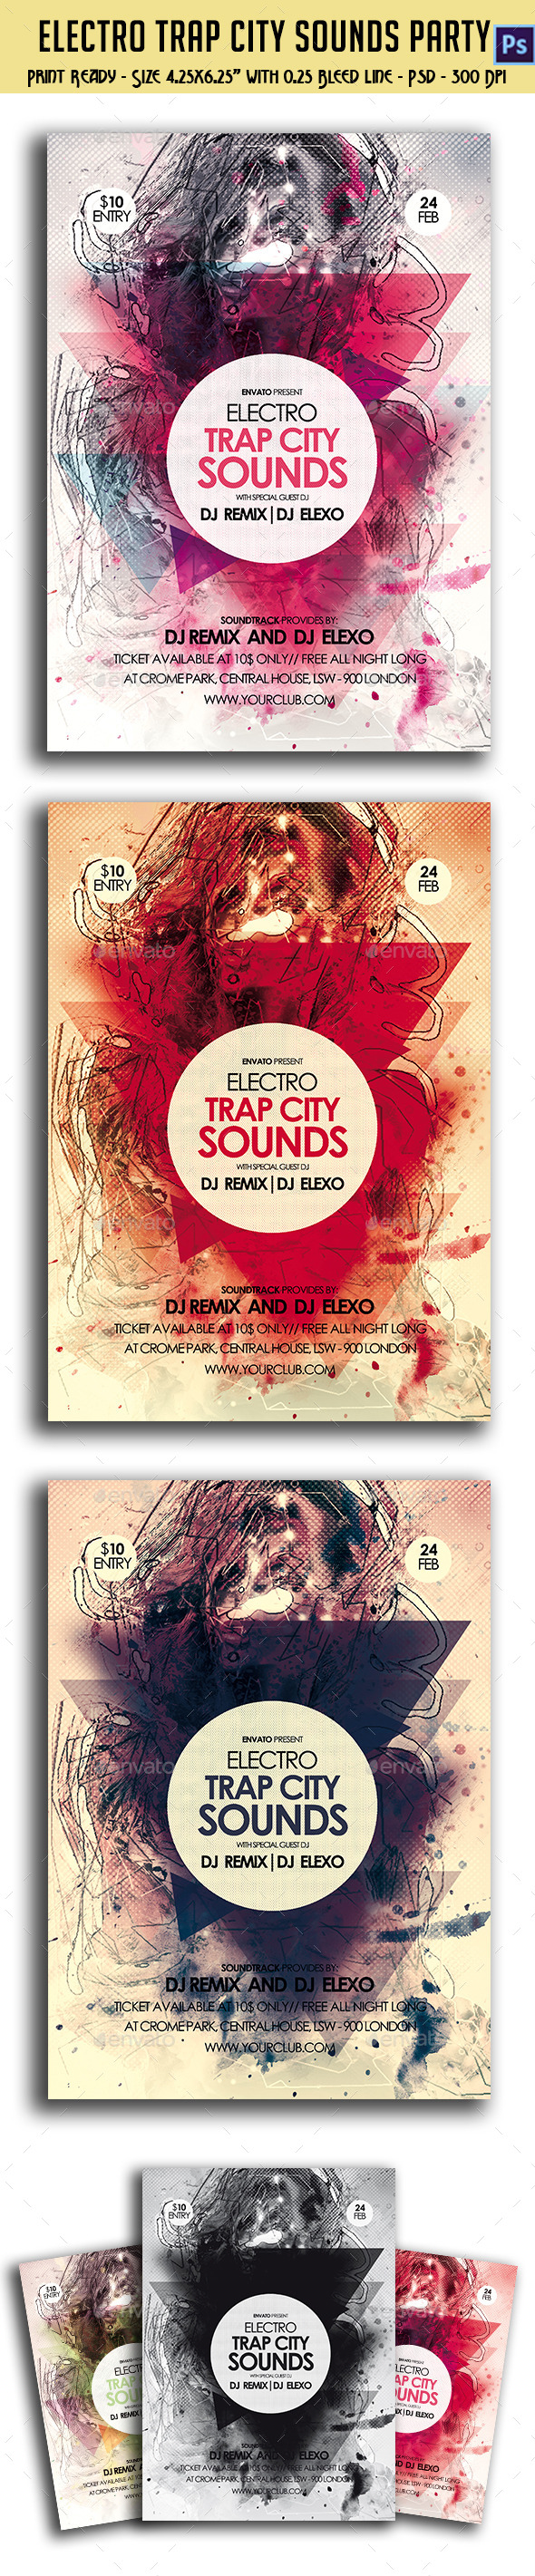 Electronic Trap City Sounds Party Flyer - Clubs & Parties Events